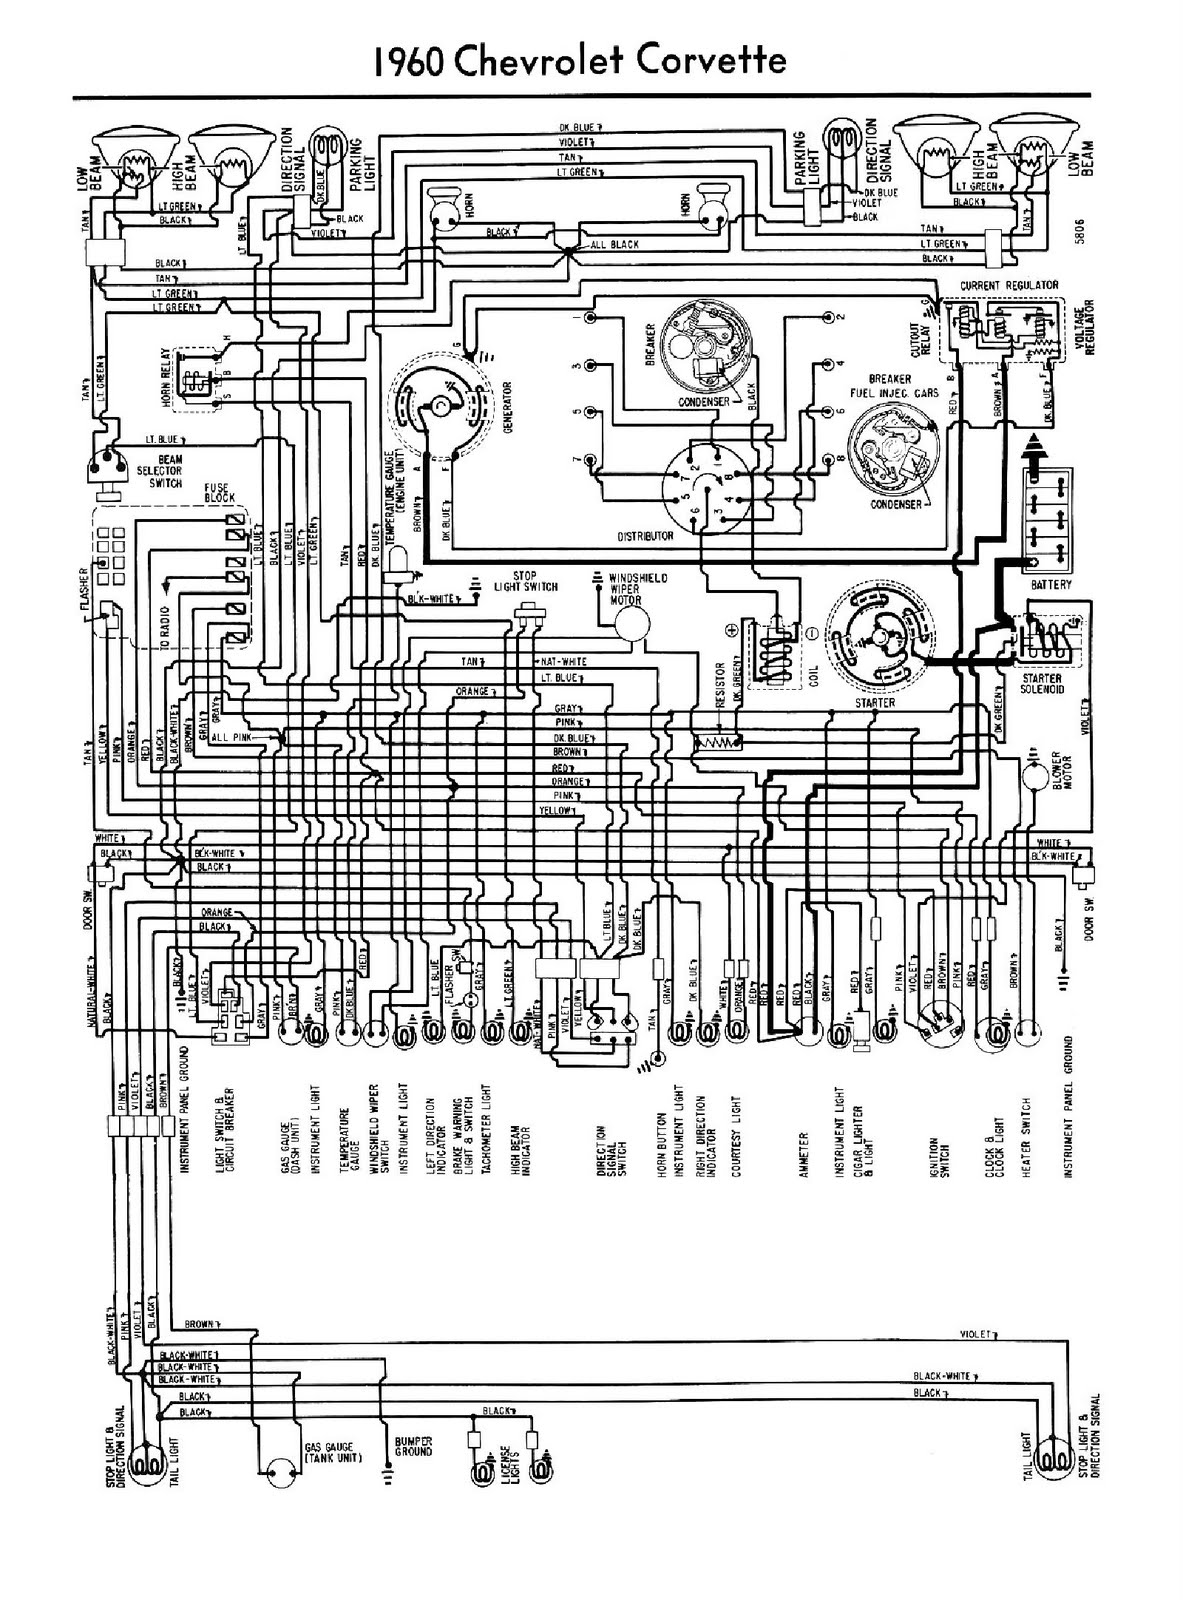 chevrolet corvette wiring diagram free picture wiring diagram rh agarwalexports co 1968 Corvette Dash Wiring 1979 Corvette Fuse Panel